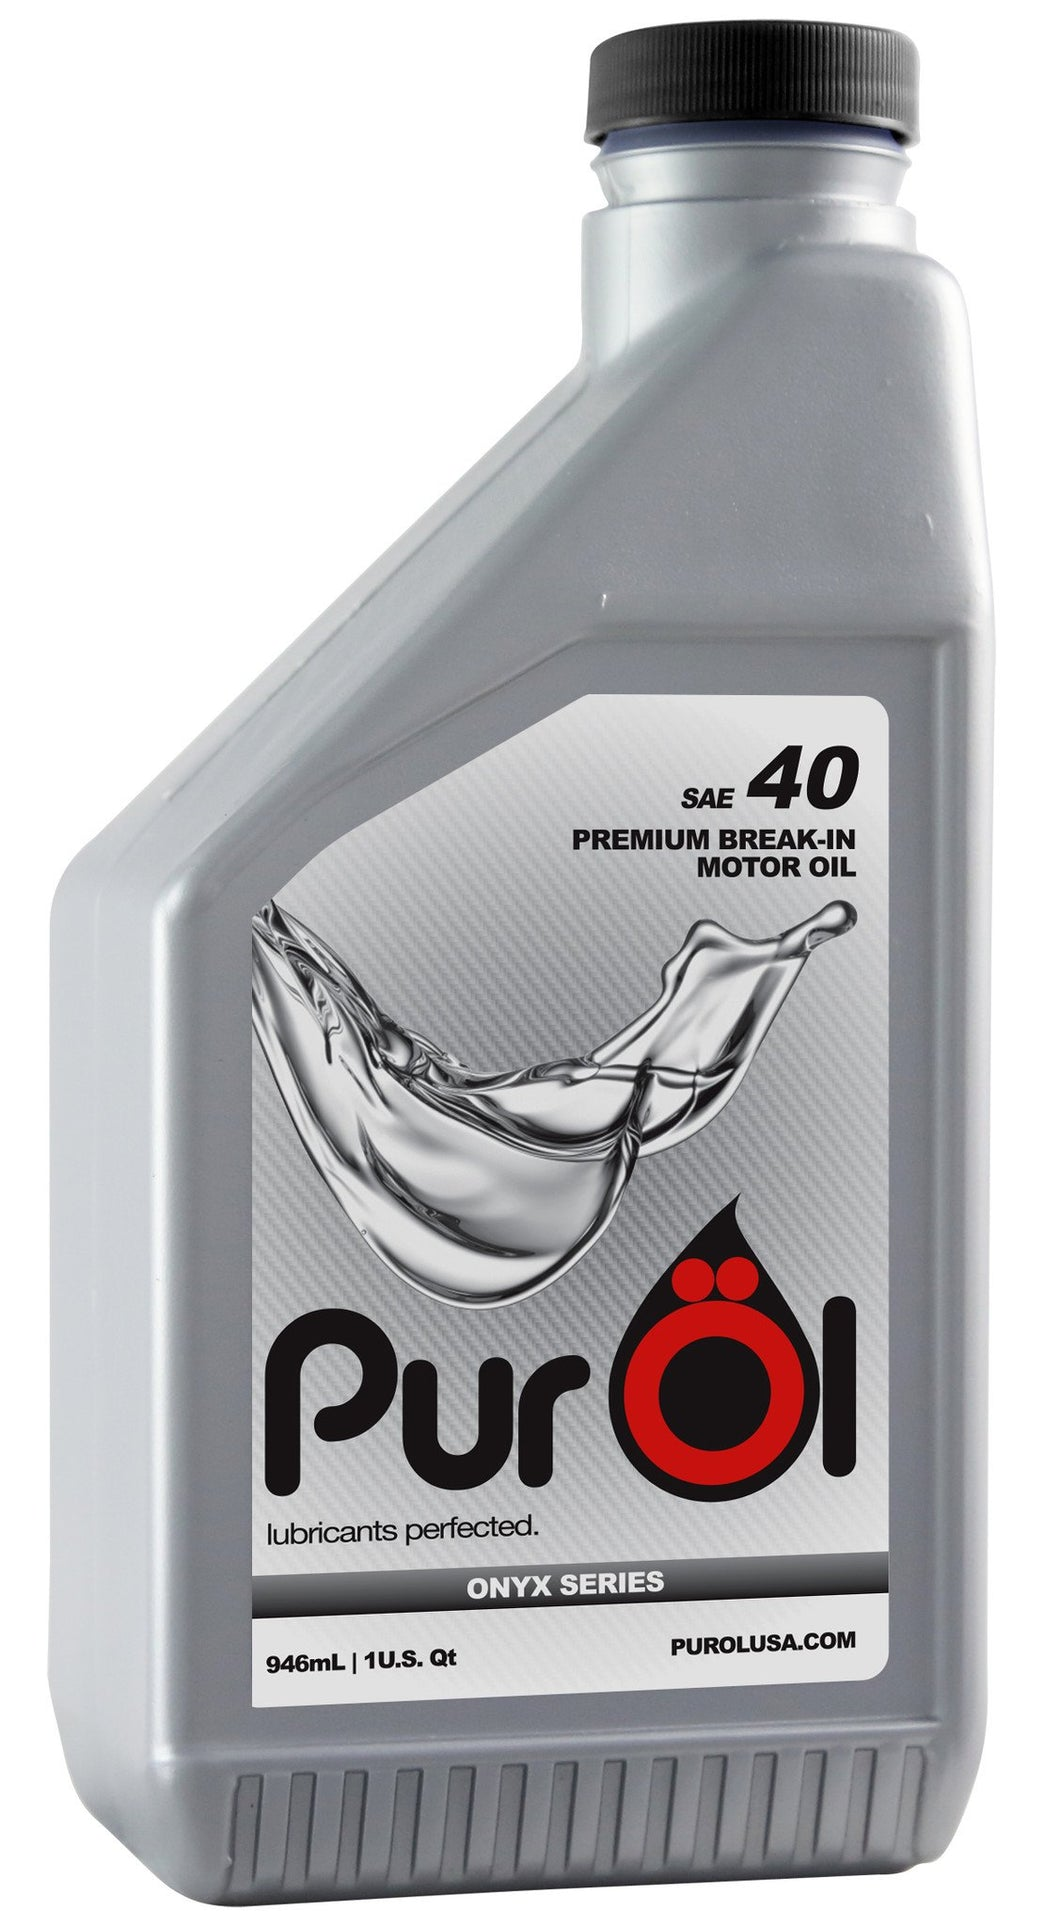 PurOl ONYX Series Premium Break-In Engine Oil SAE 40 1L - Universal